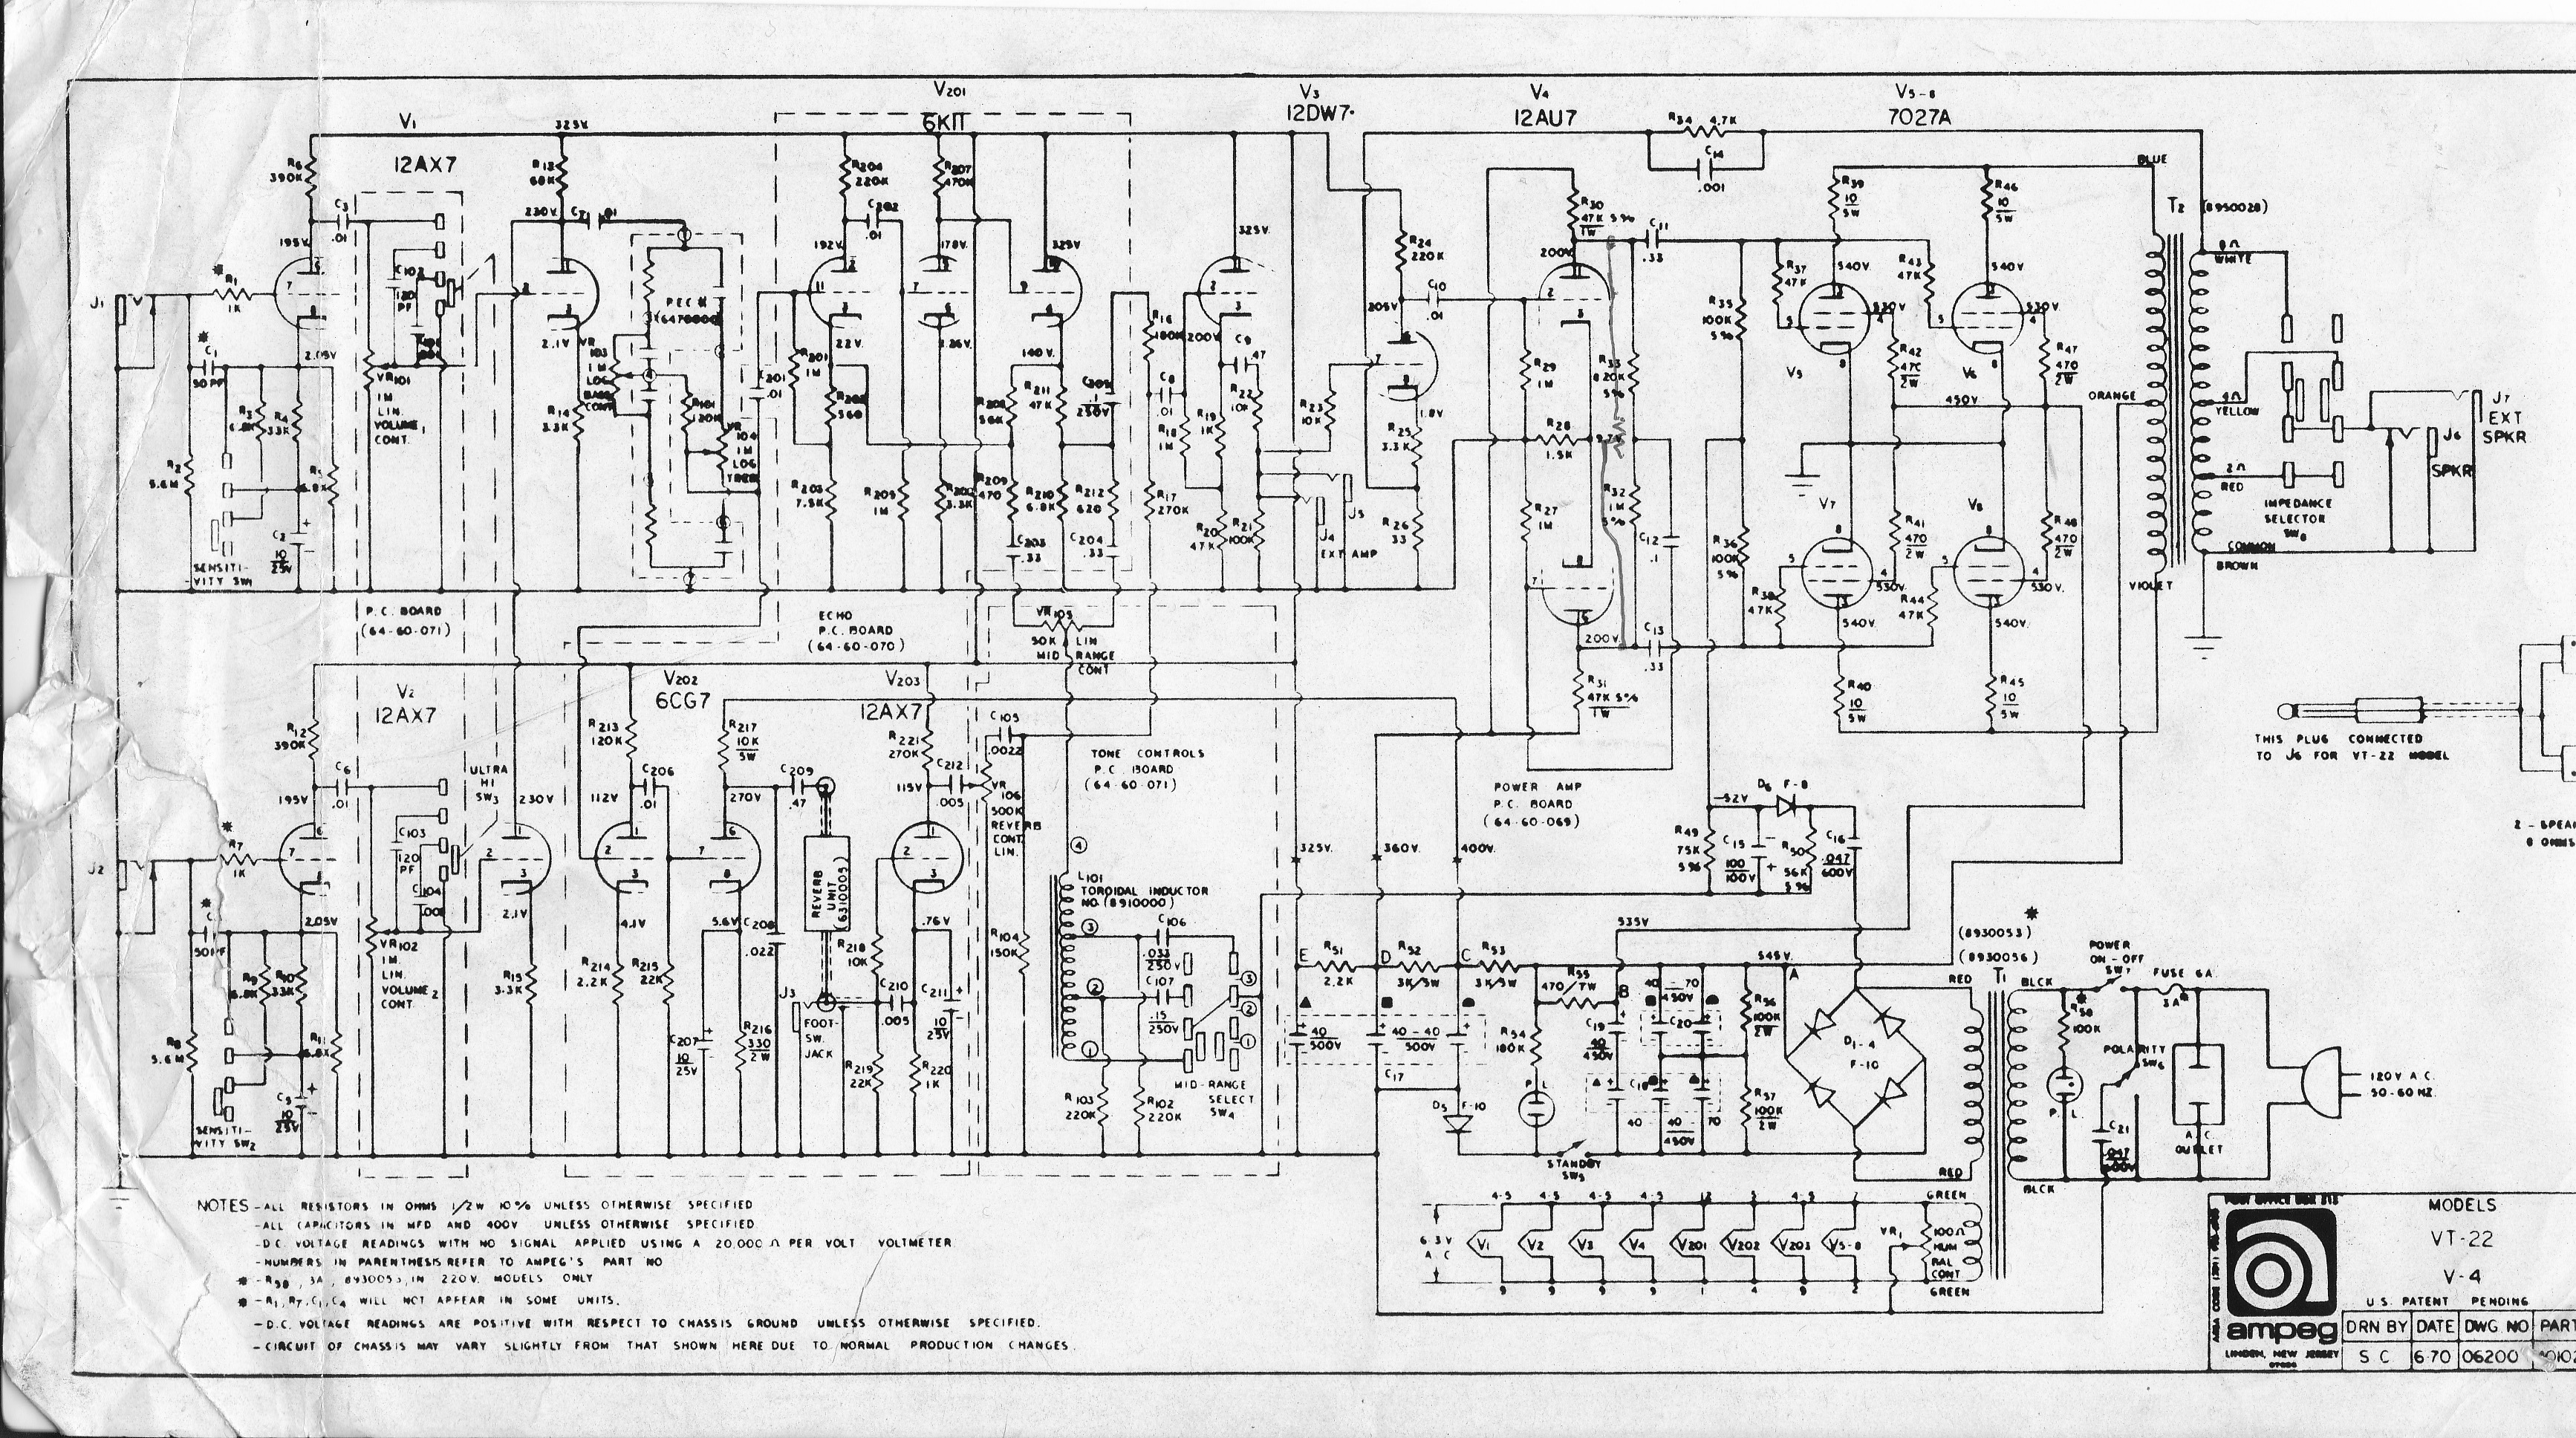 Schematics :: Ampeg V4.com | All Ampeg All The Time on circuit diagram, straight-line diagram, data flow diagram, ladder logic, control flow diagram, function block diagram, technical drawing, functional flow block diagram, tube map, piping and instrumentation diagram, electronic design automation, diagramming software, schematic capture, one-line diagram, cross section, block diagram,